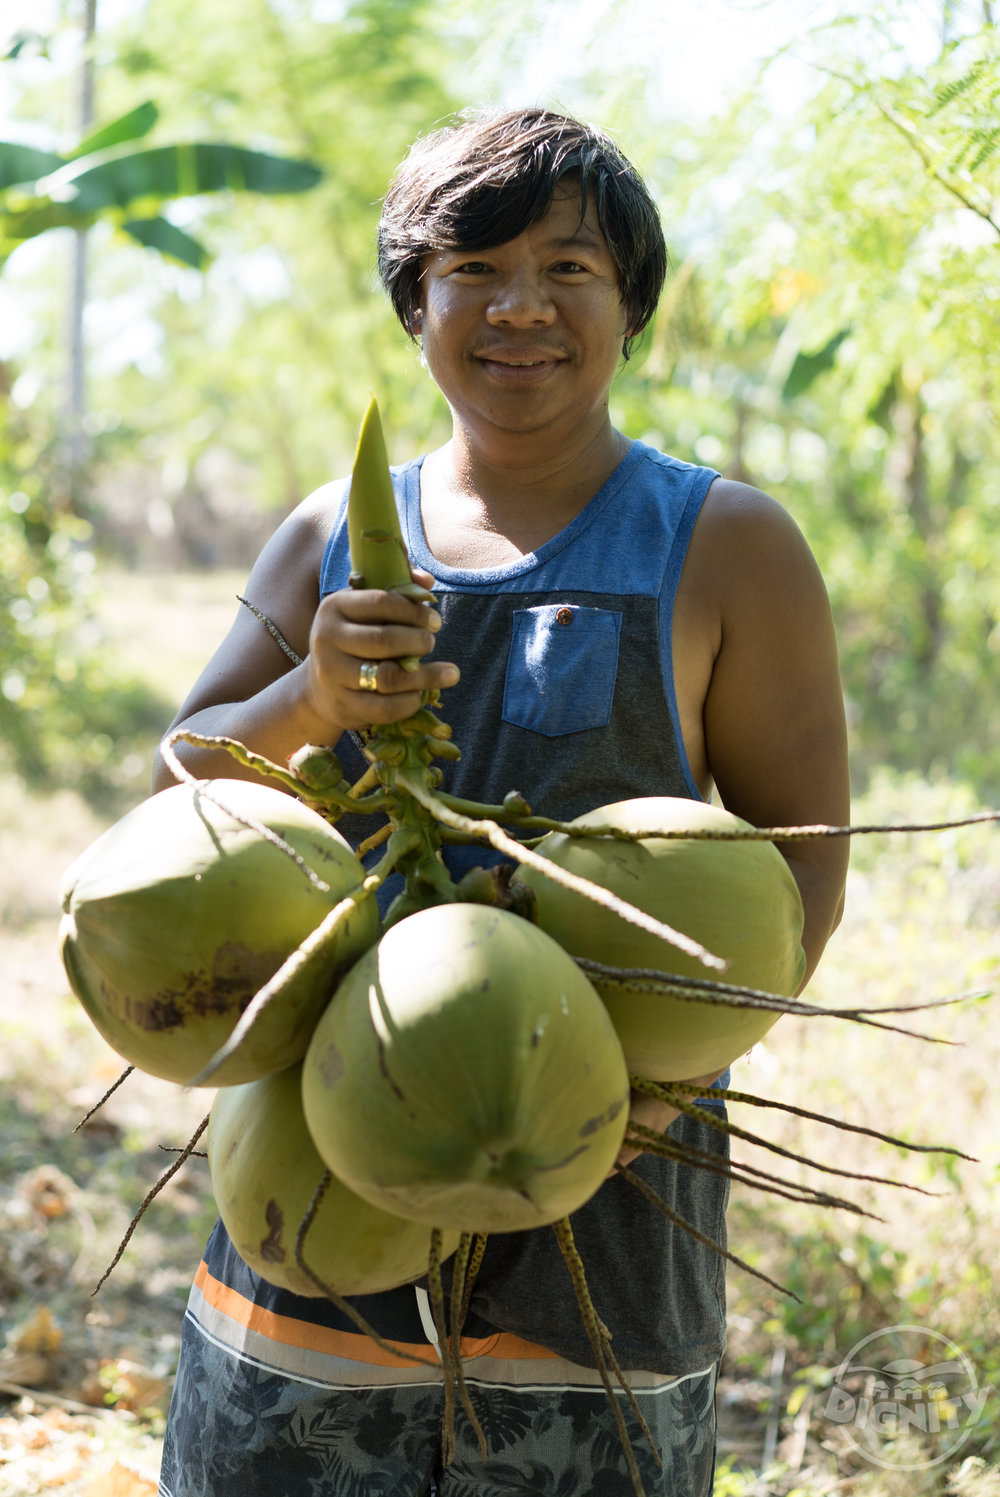 Break cycles of poverty - Finally, Organic certifying the coconuts means the farmers benefit. Their coconuts can be sold for a higher price when they are Organic. Farmers are often stuck in what is called